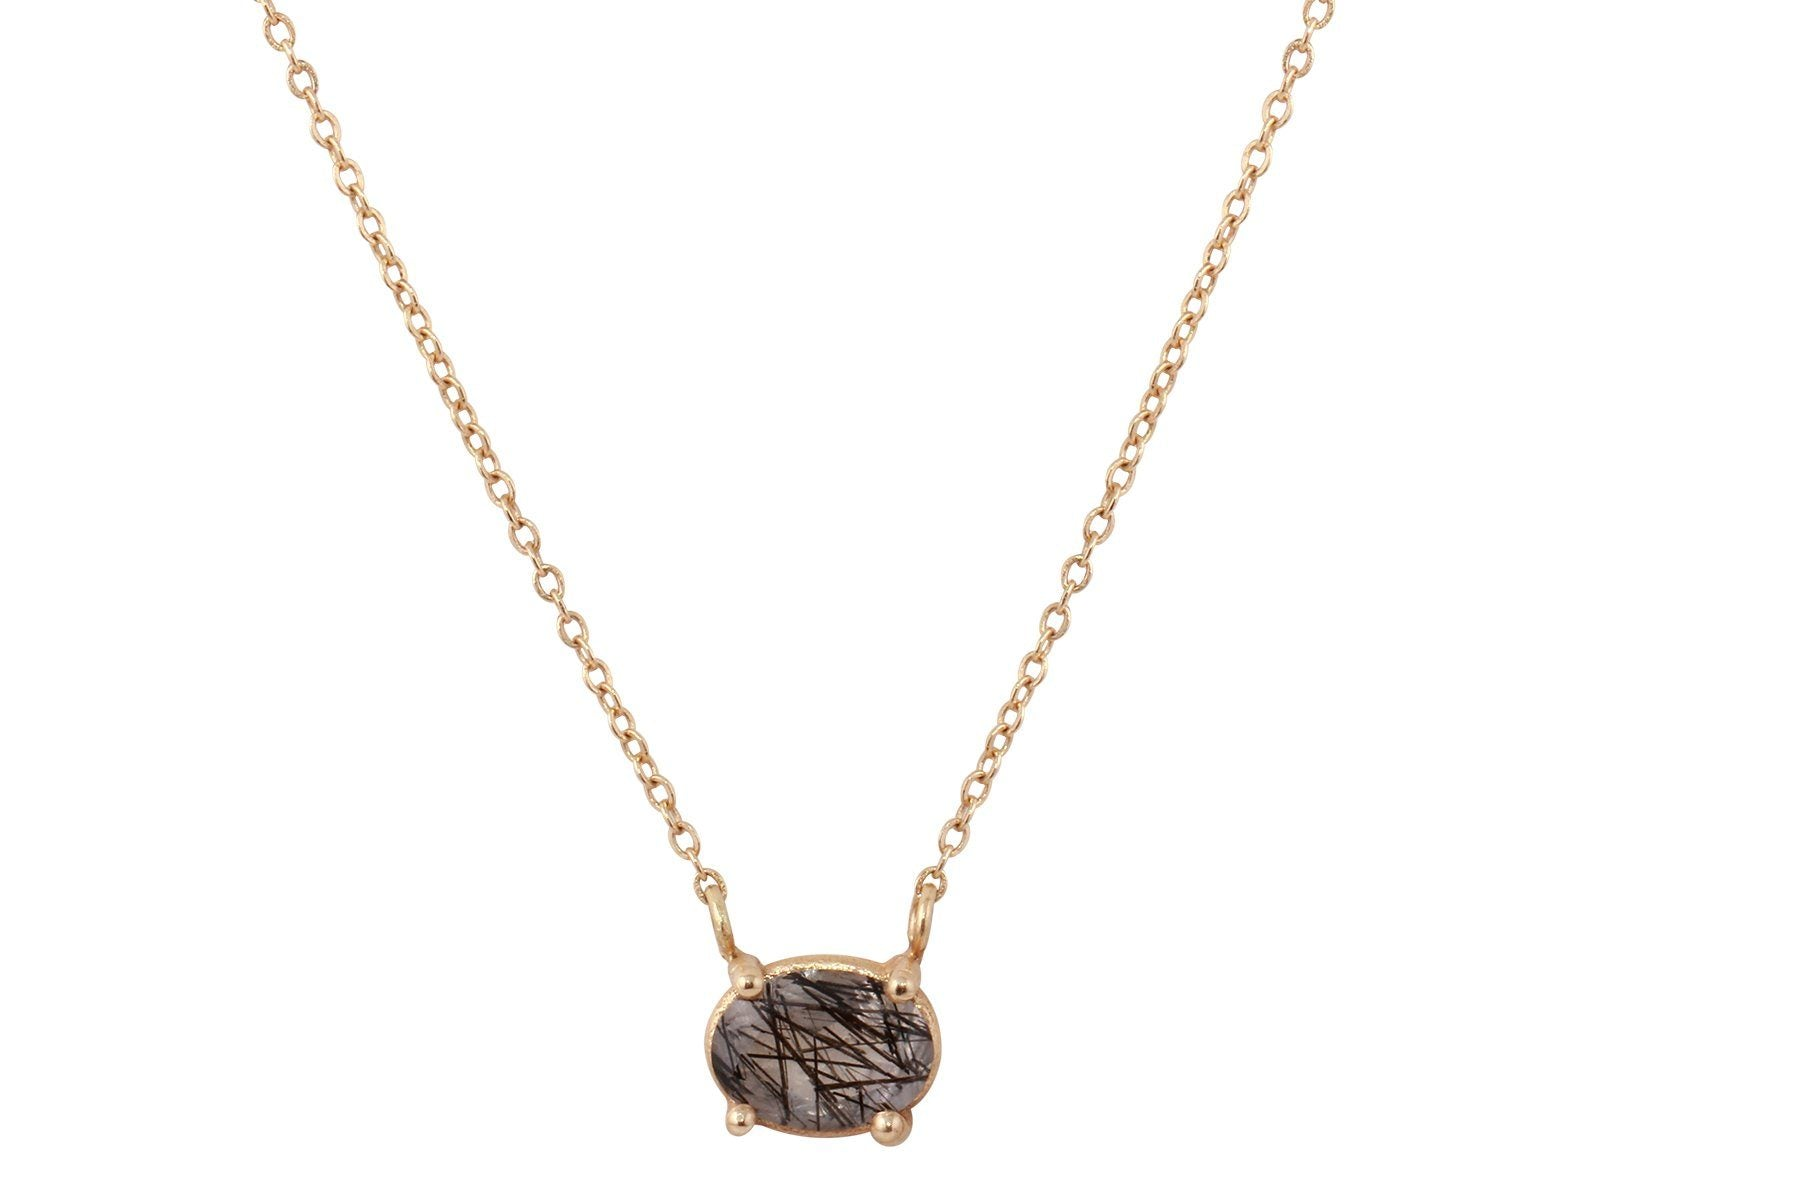 14K gold dainty tourmalinated quartz necklace - Amanda K Lockrow